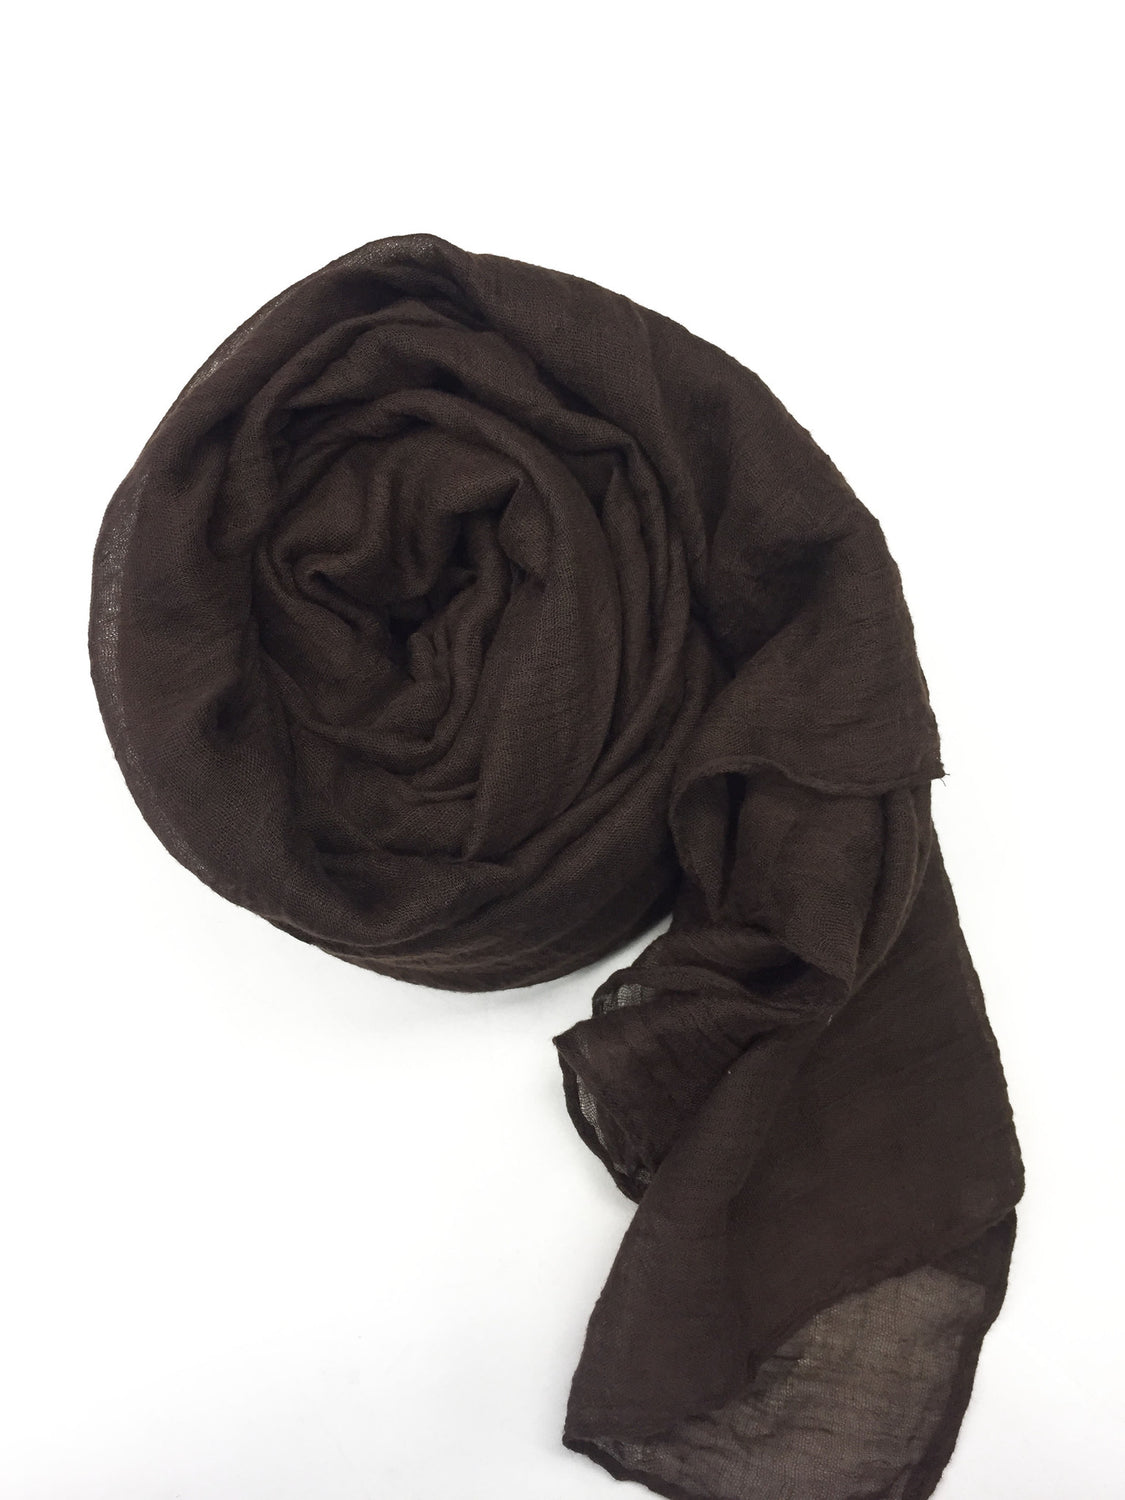 solid brown hijab